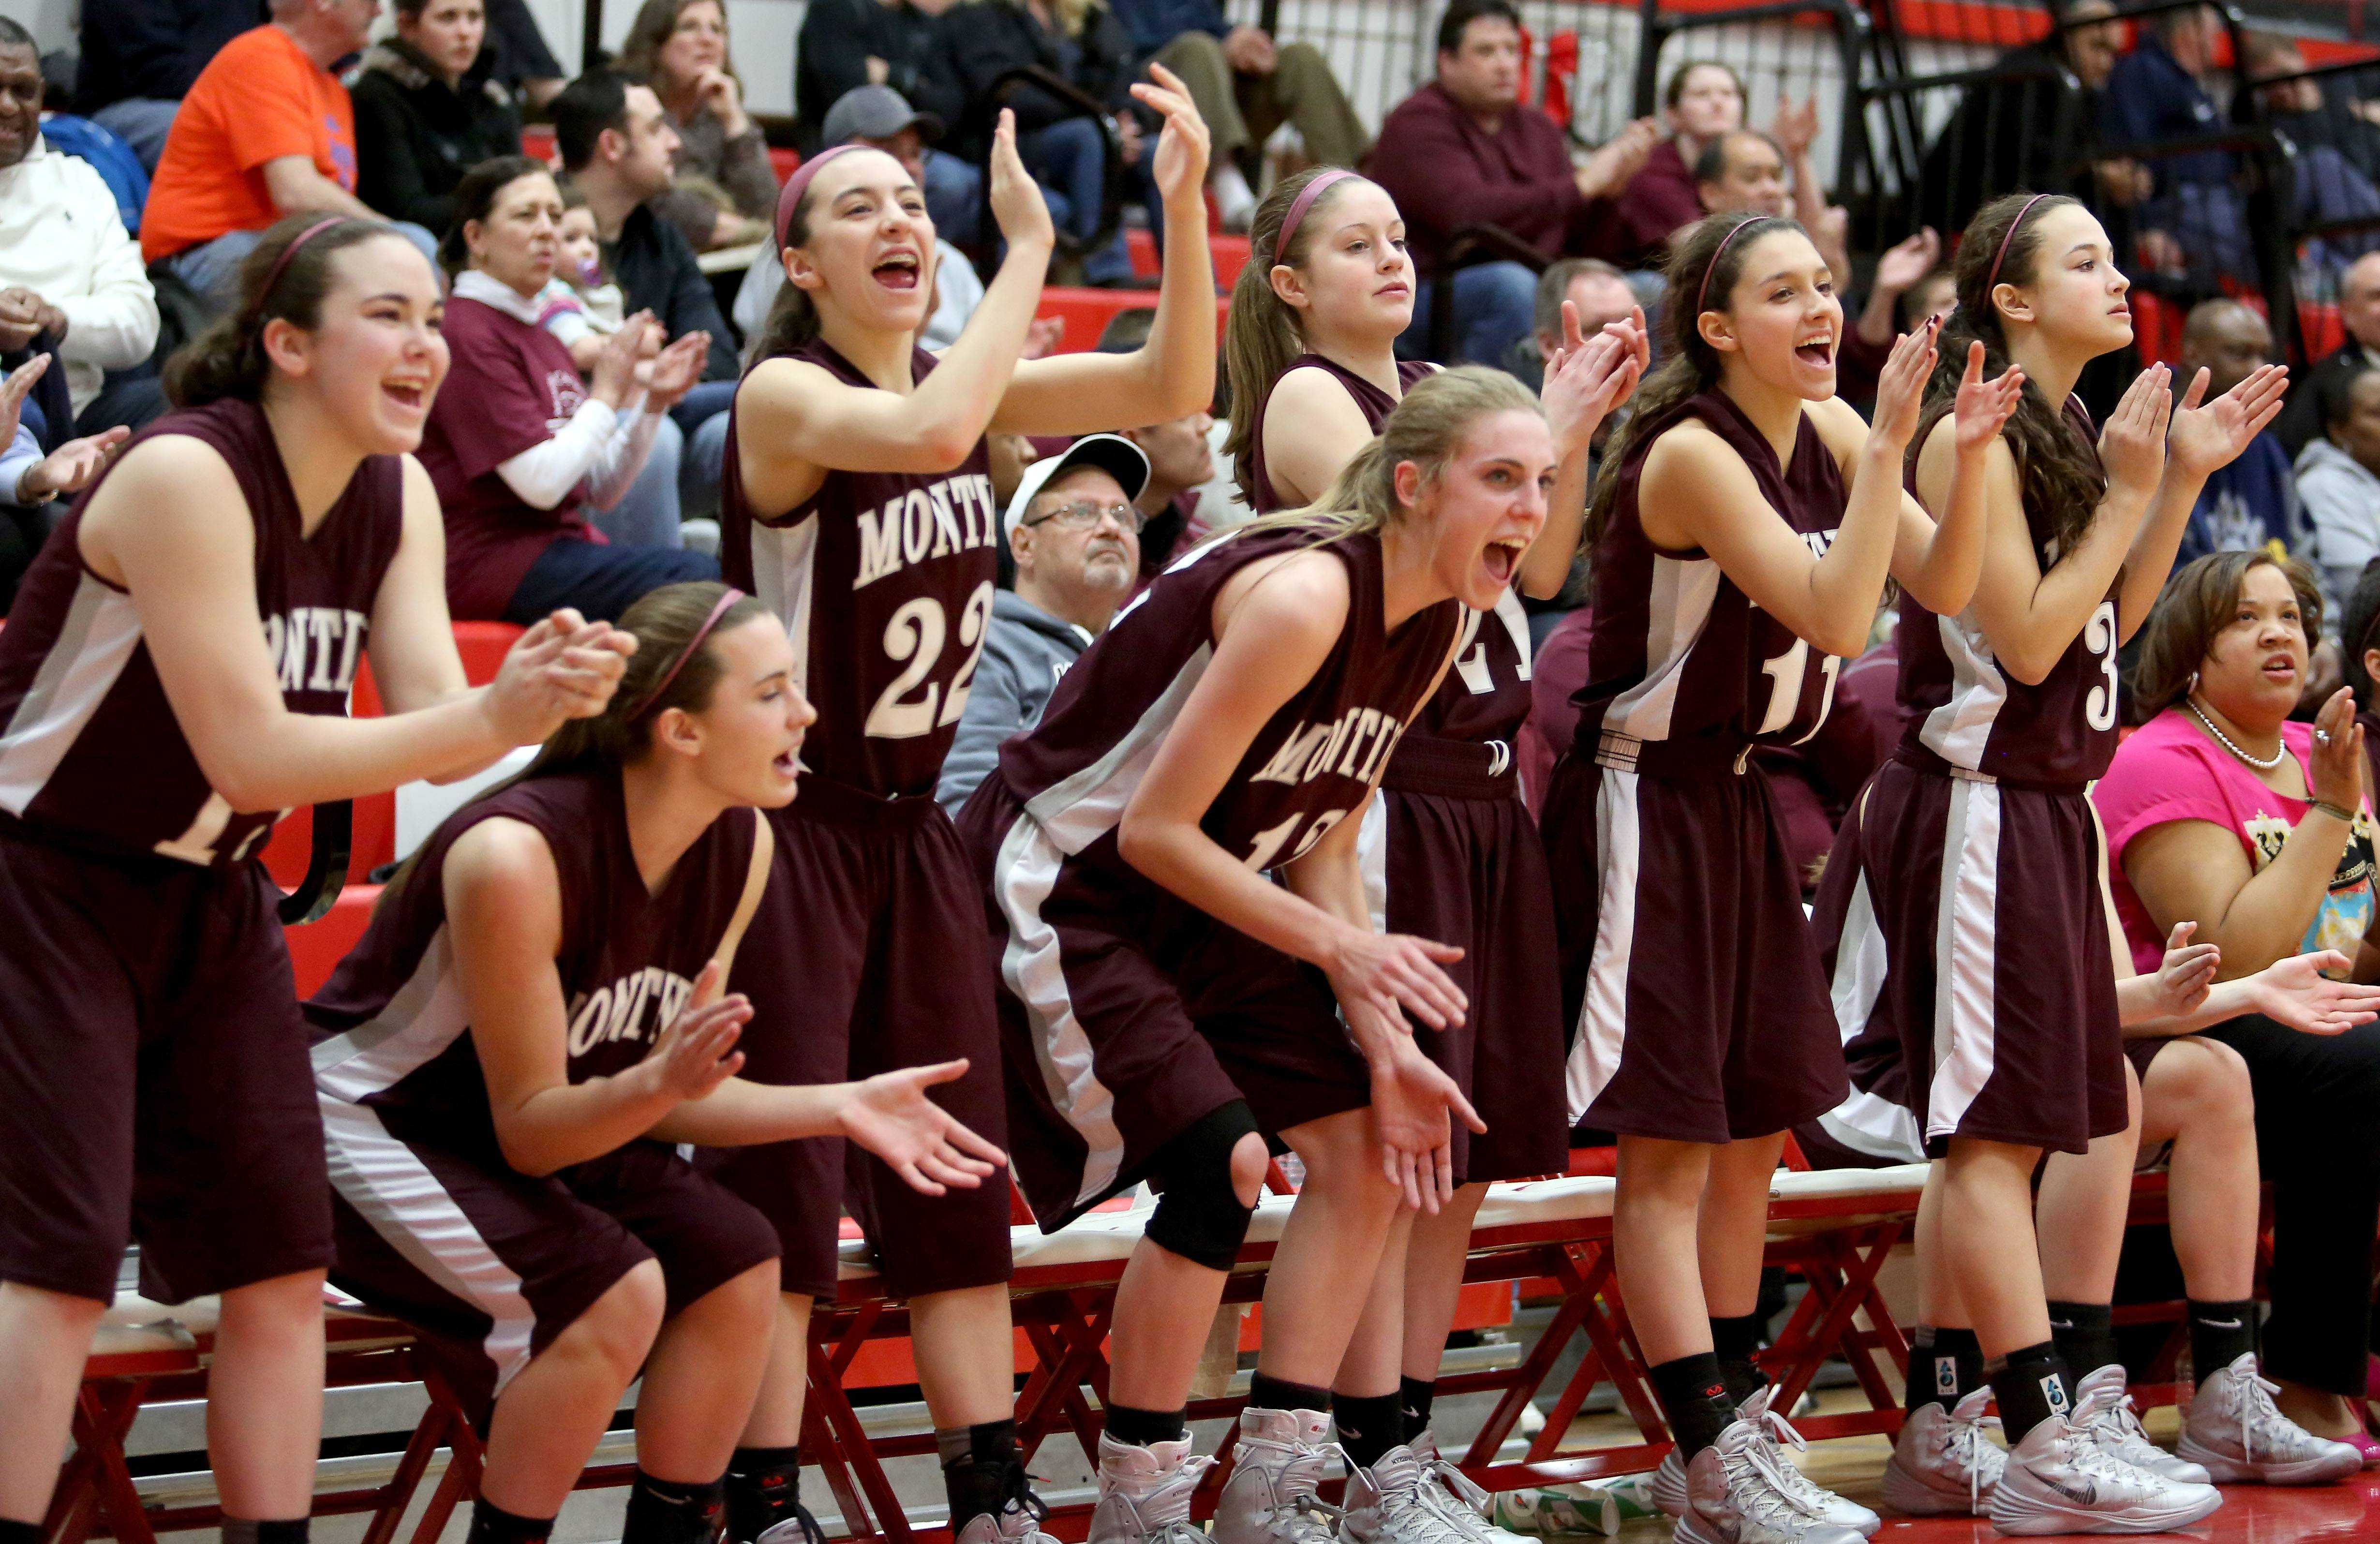 Players on the Montini bench celebrate.